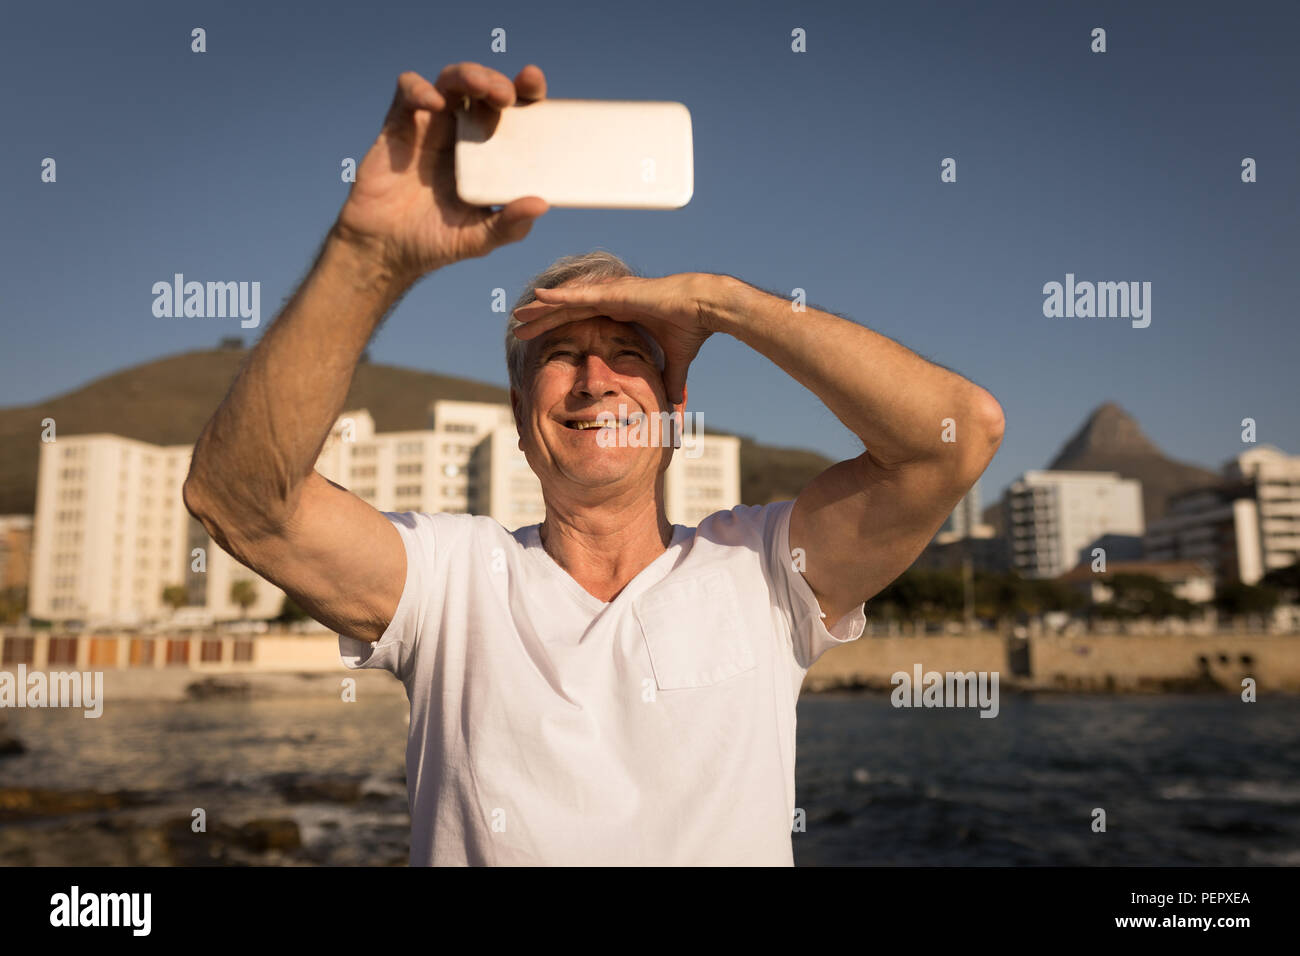 Man près de selfies côté mer Photo Stock